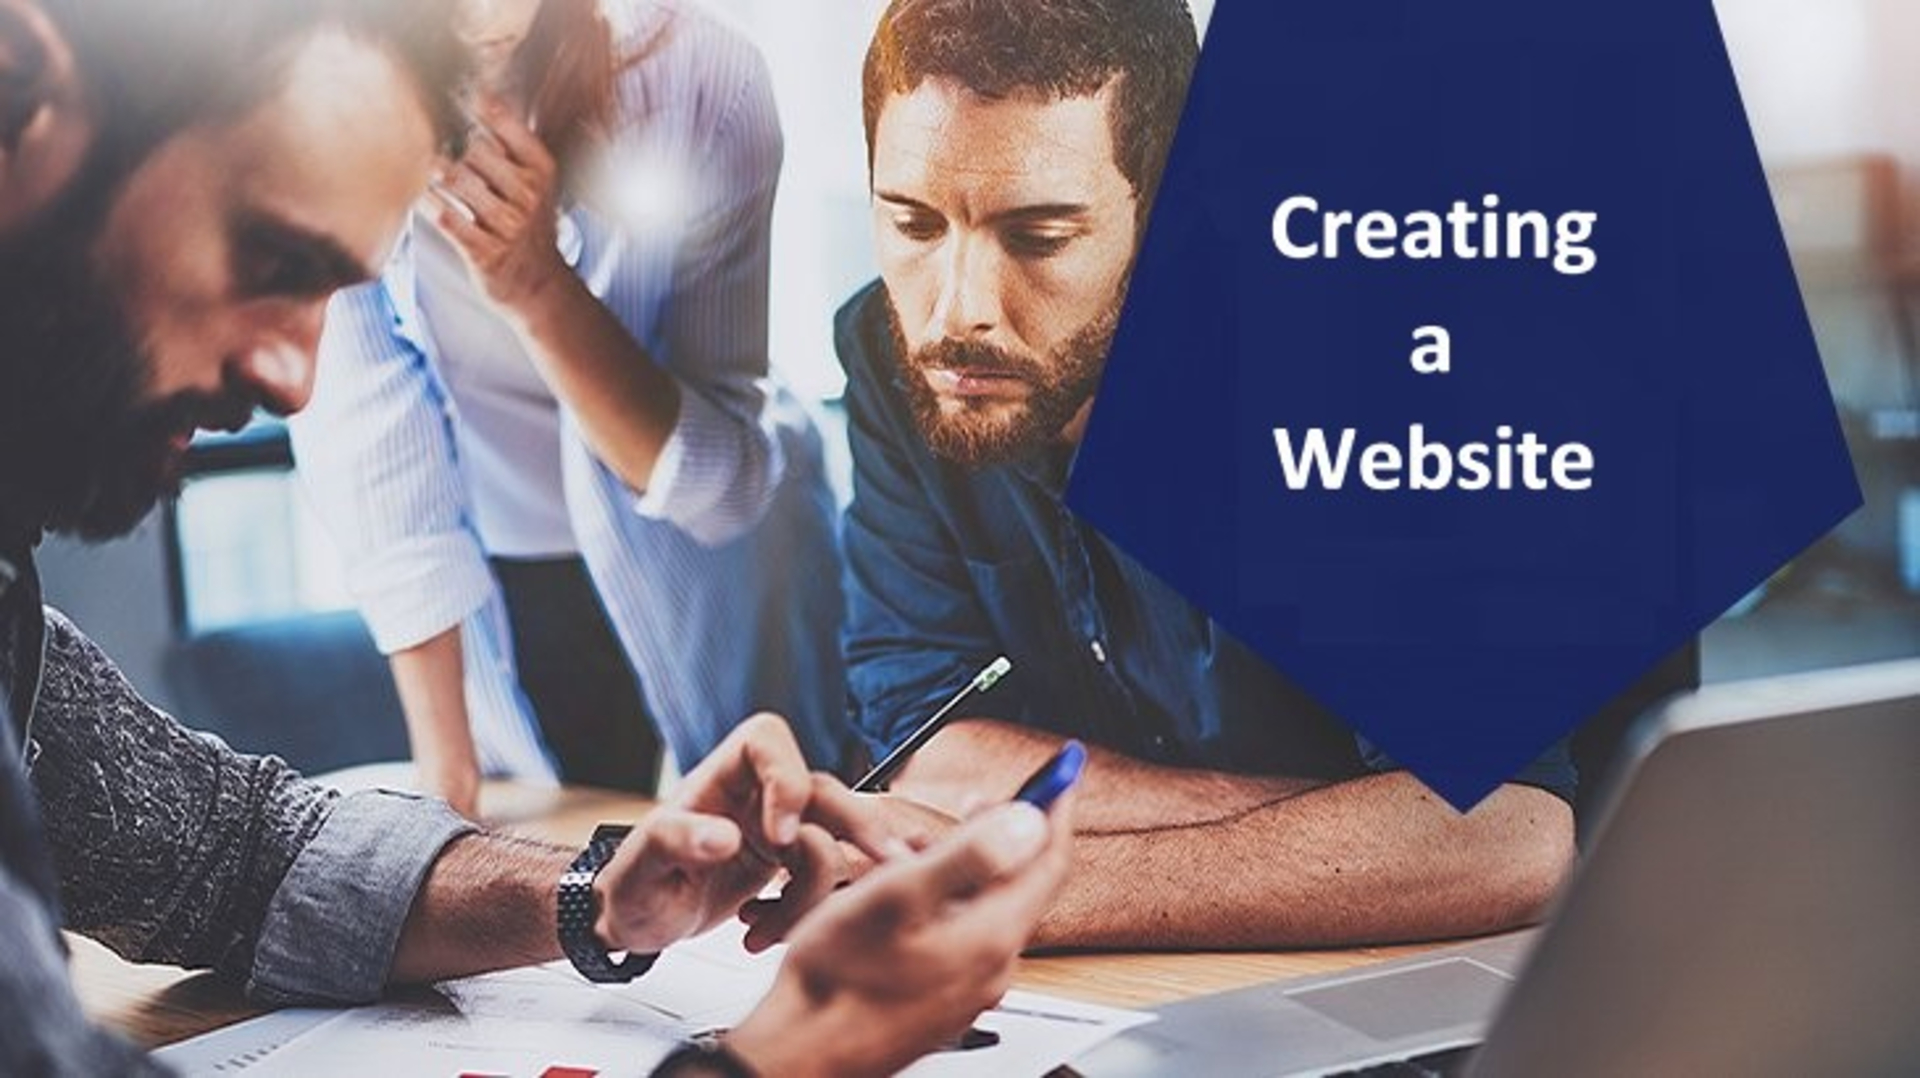 Zoom The World - Creating a Website